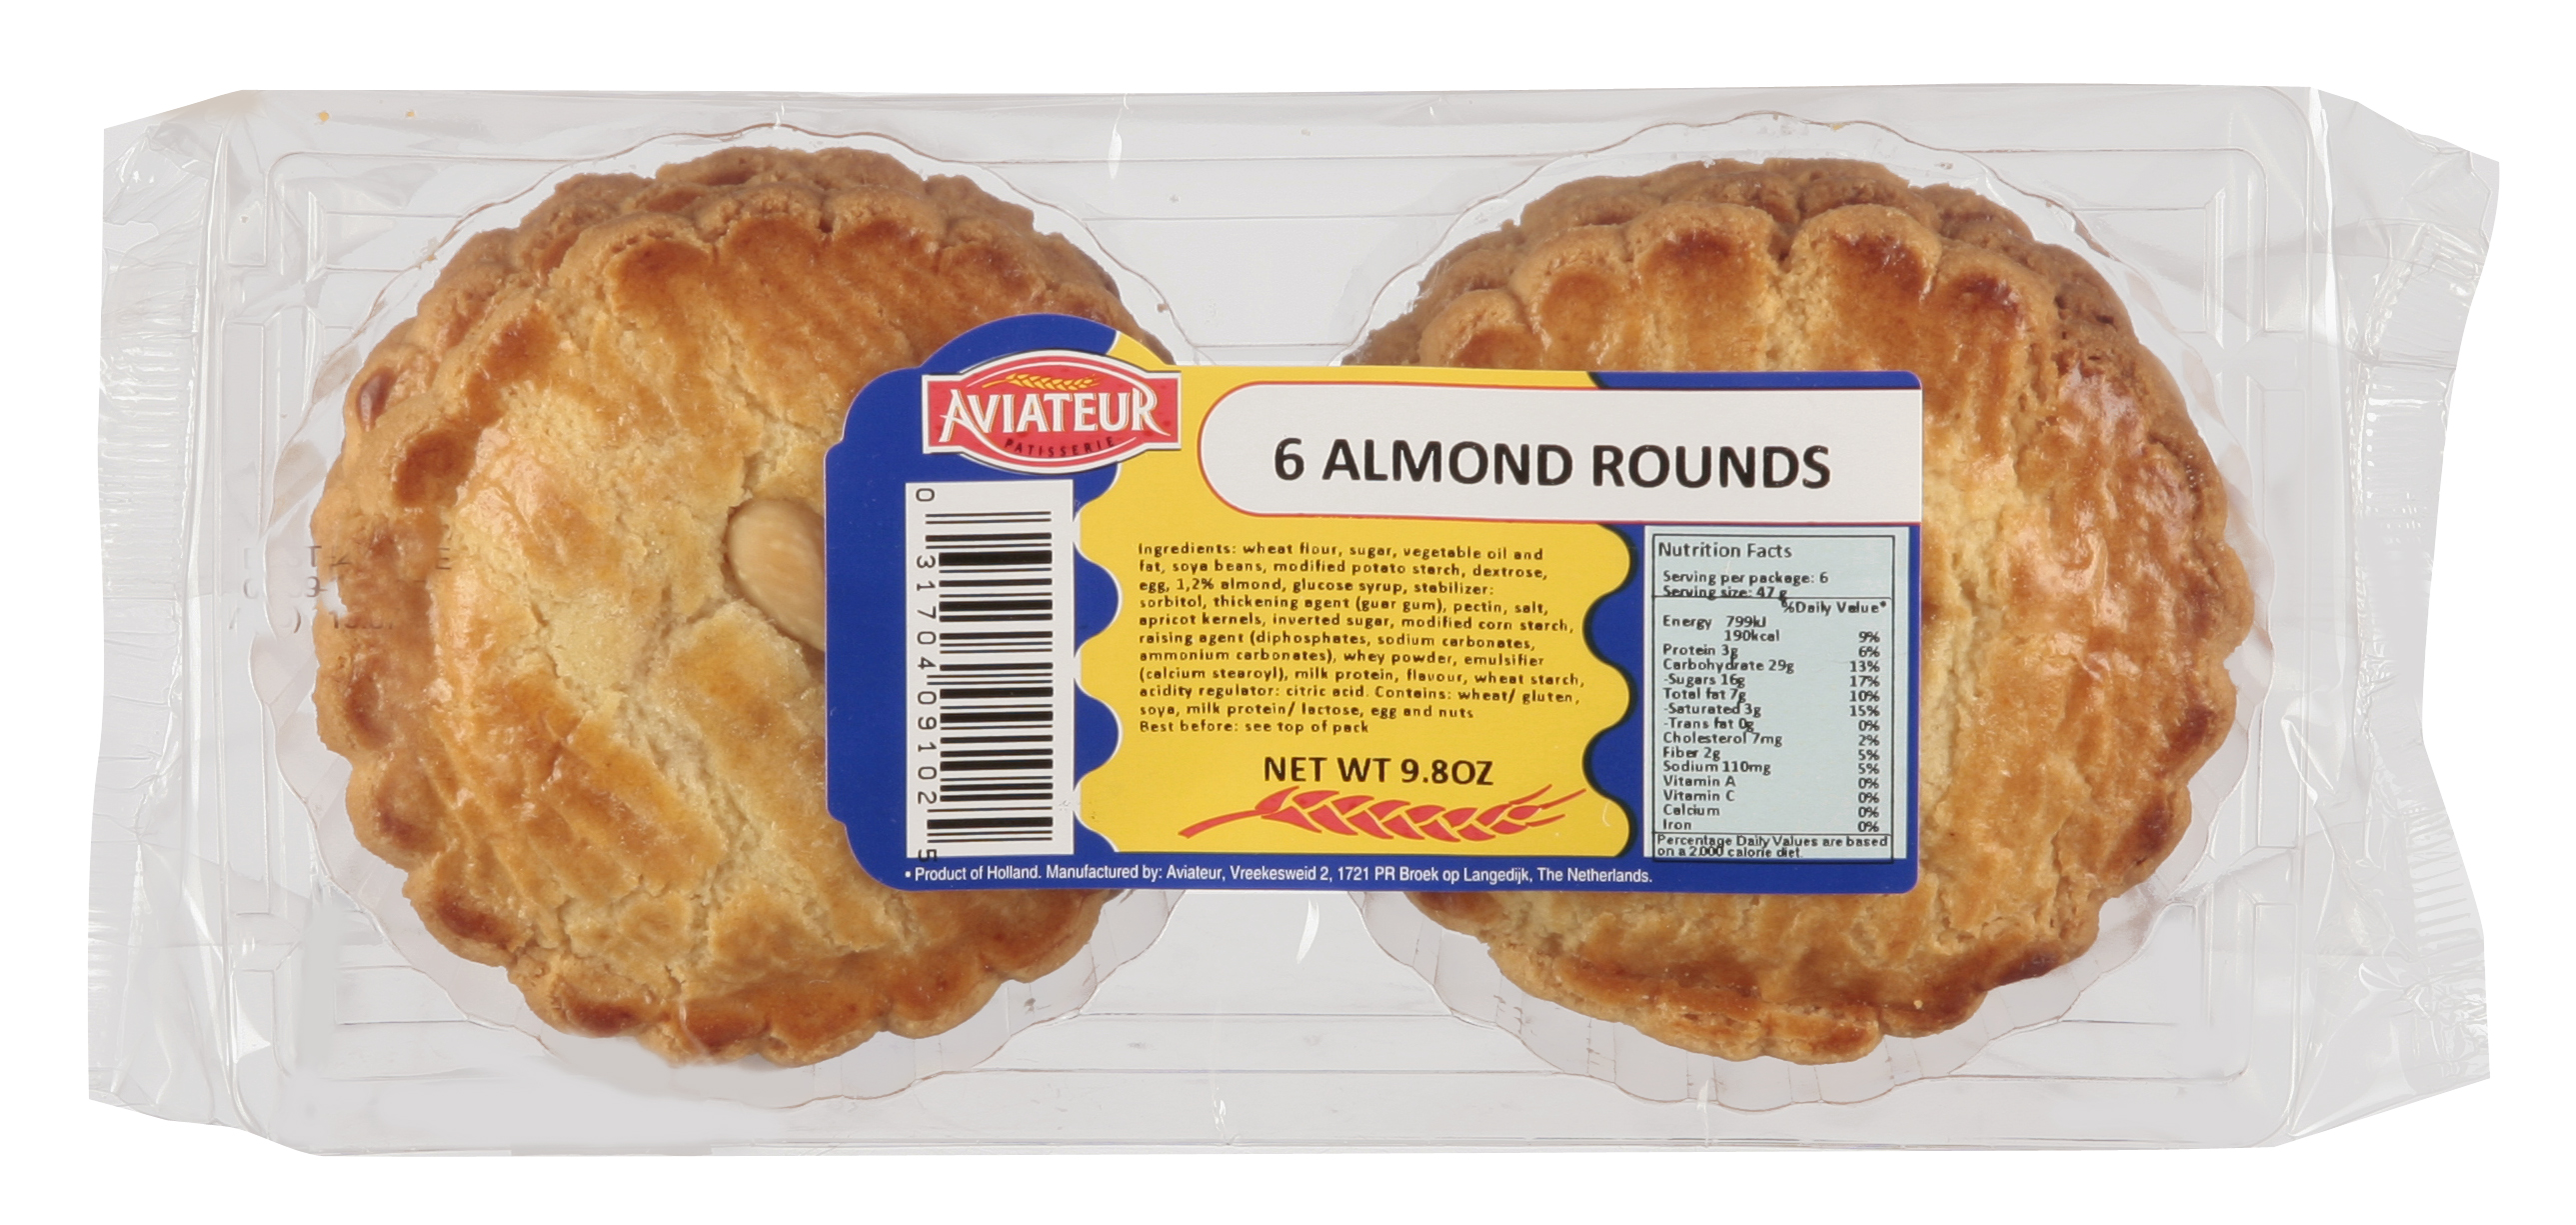 Aviateur Almond Rounds (OUT OF STOCK- BACK END OF JANUARY)